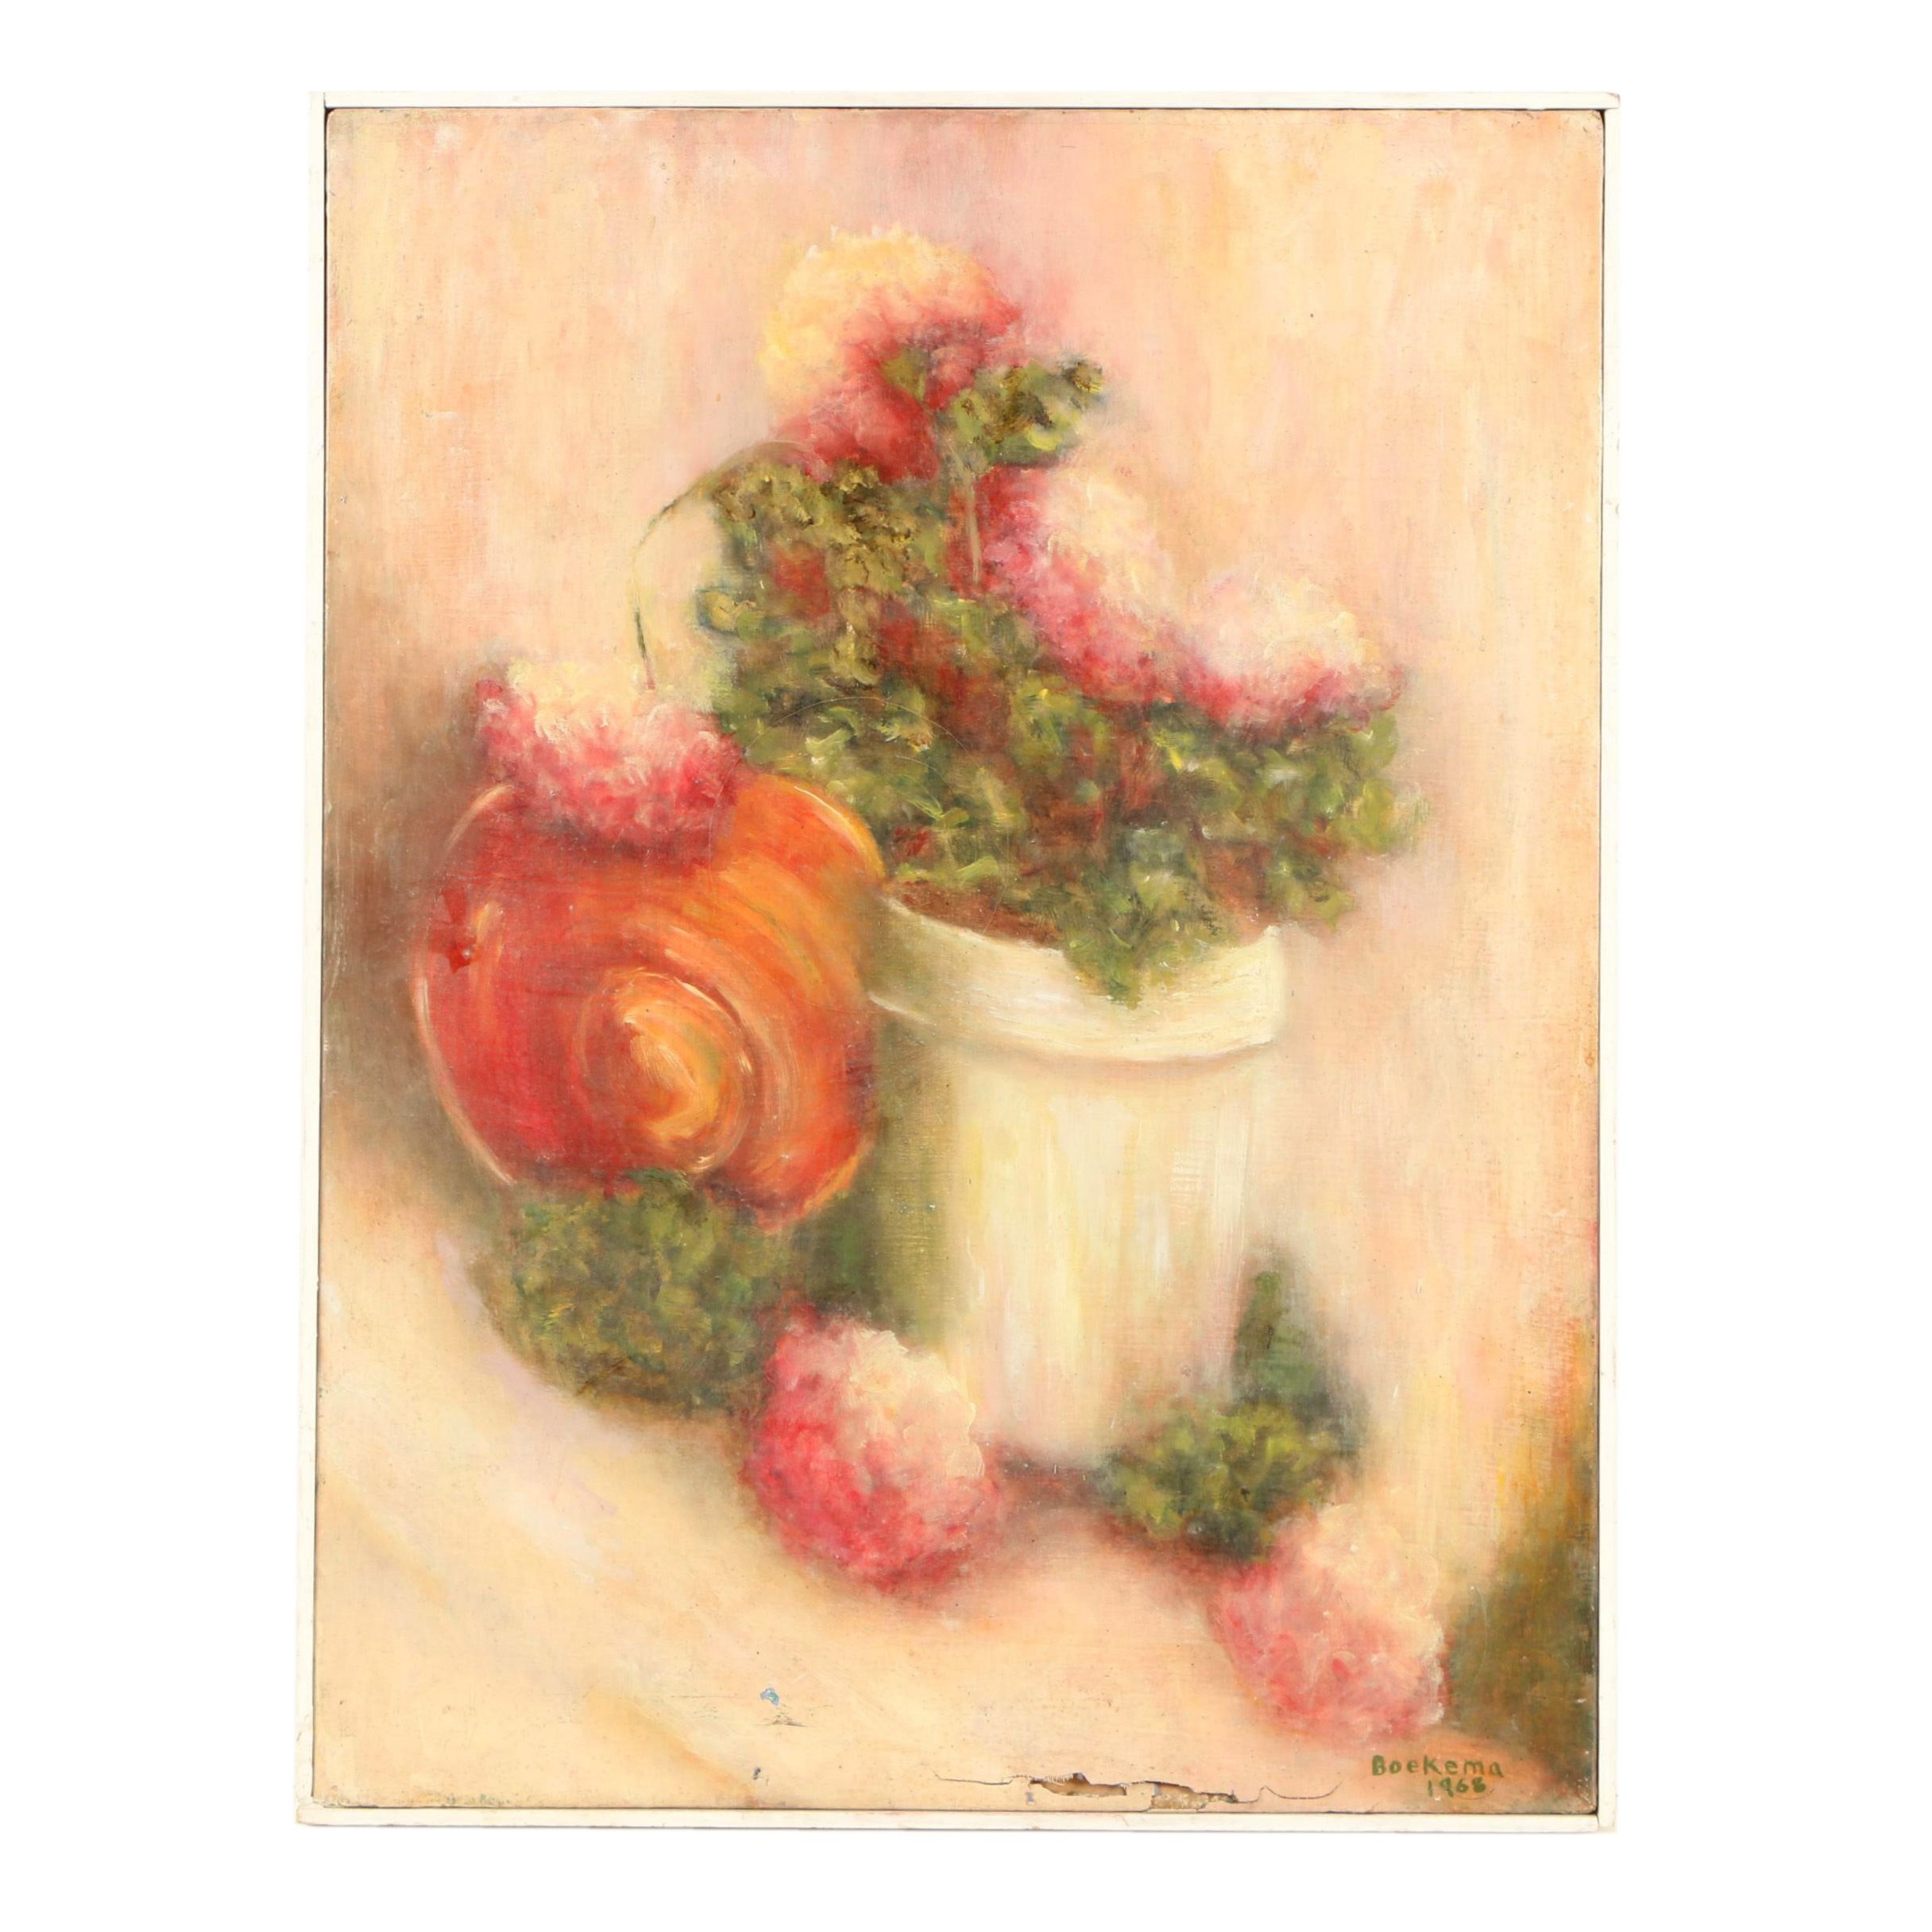 Boekema 1968 Oil Painting Floral Still Life